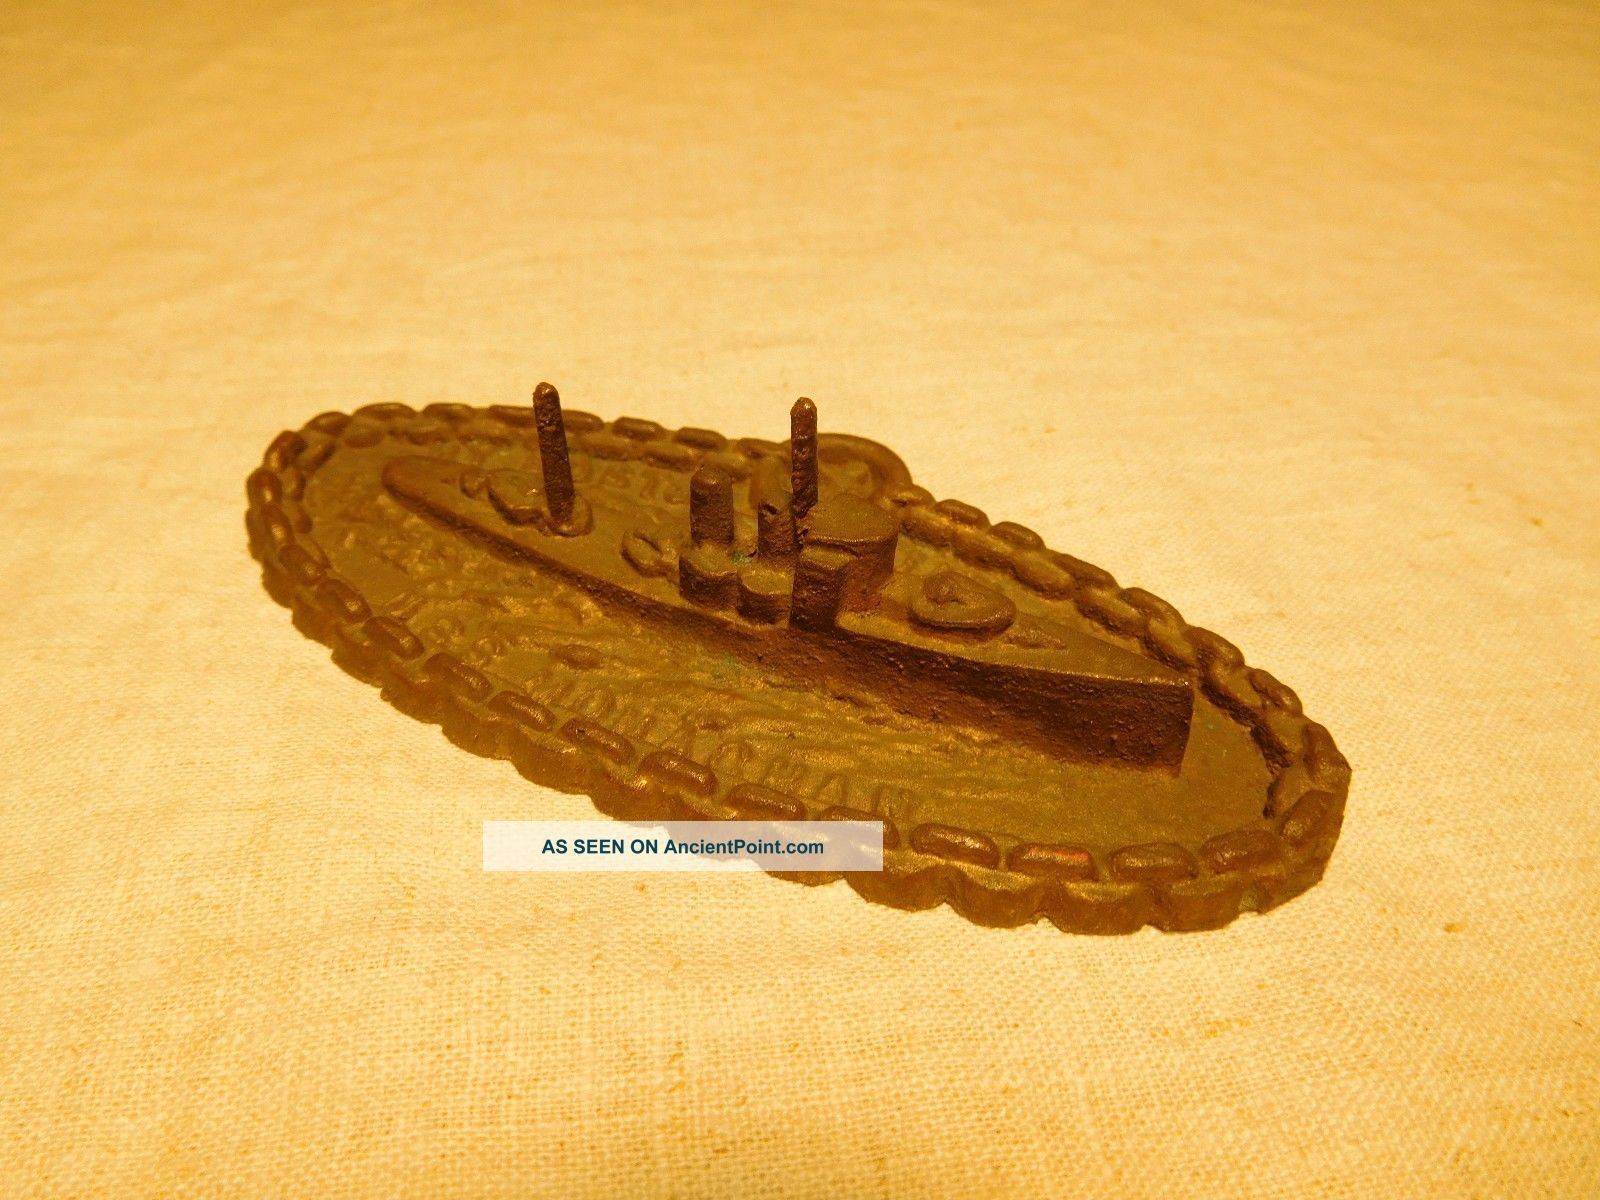 1935 Uss Monaghan Bronze Ship Launch Paperweight Other Maritime Antiques photo